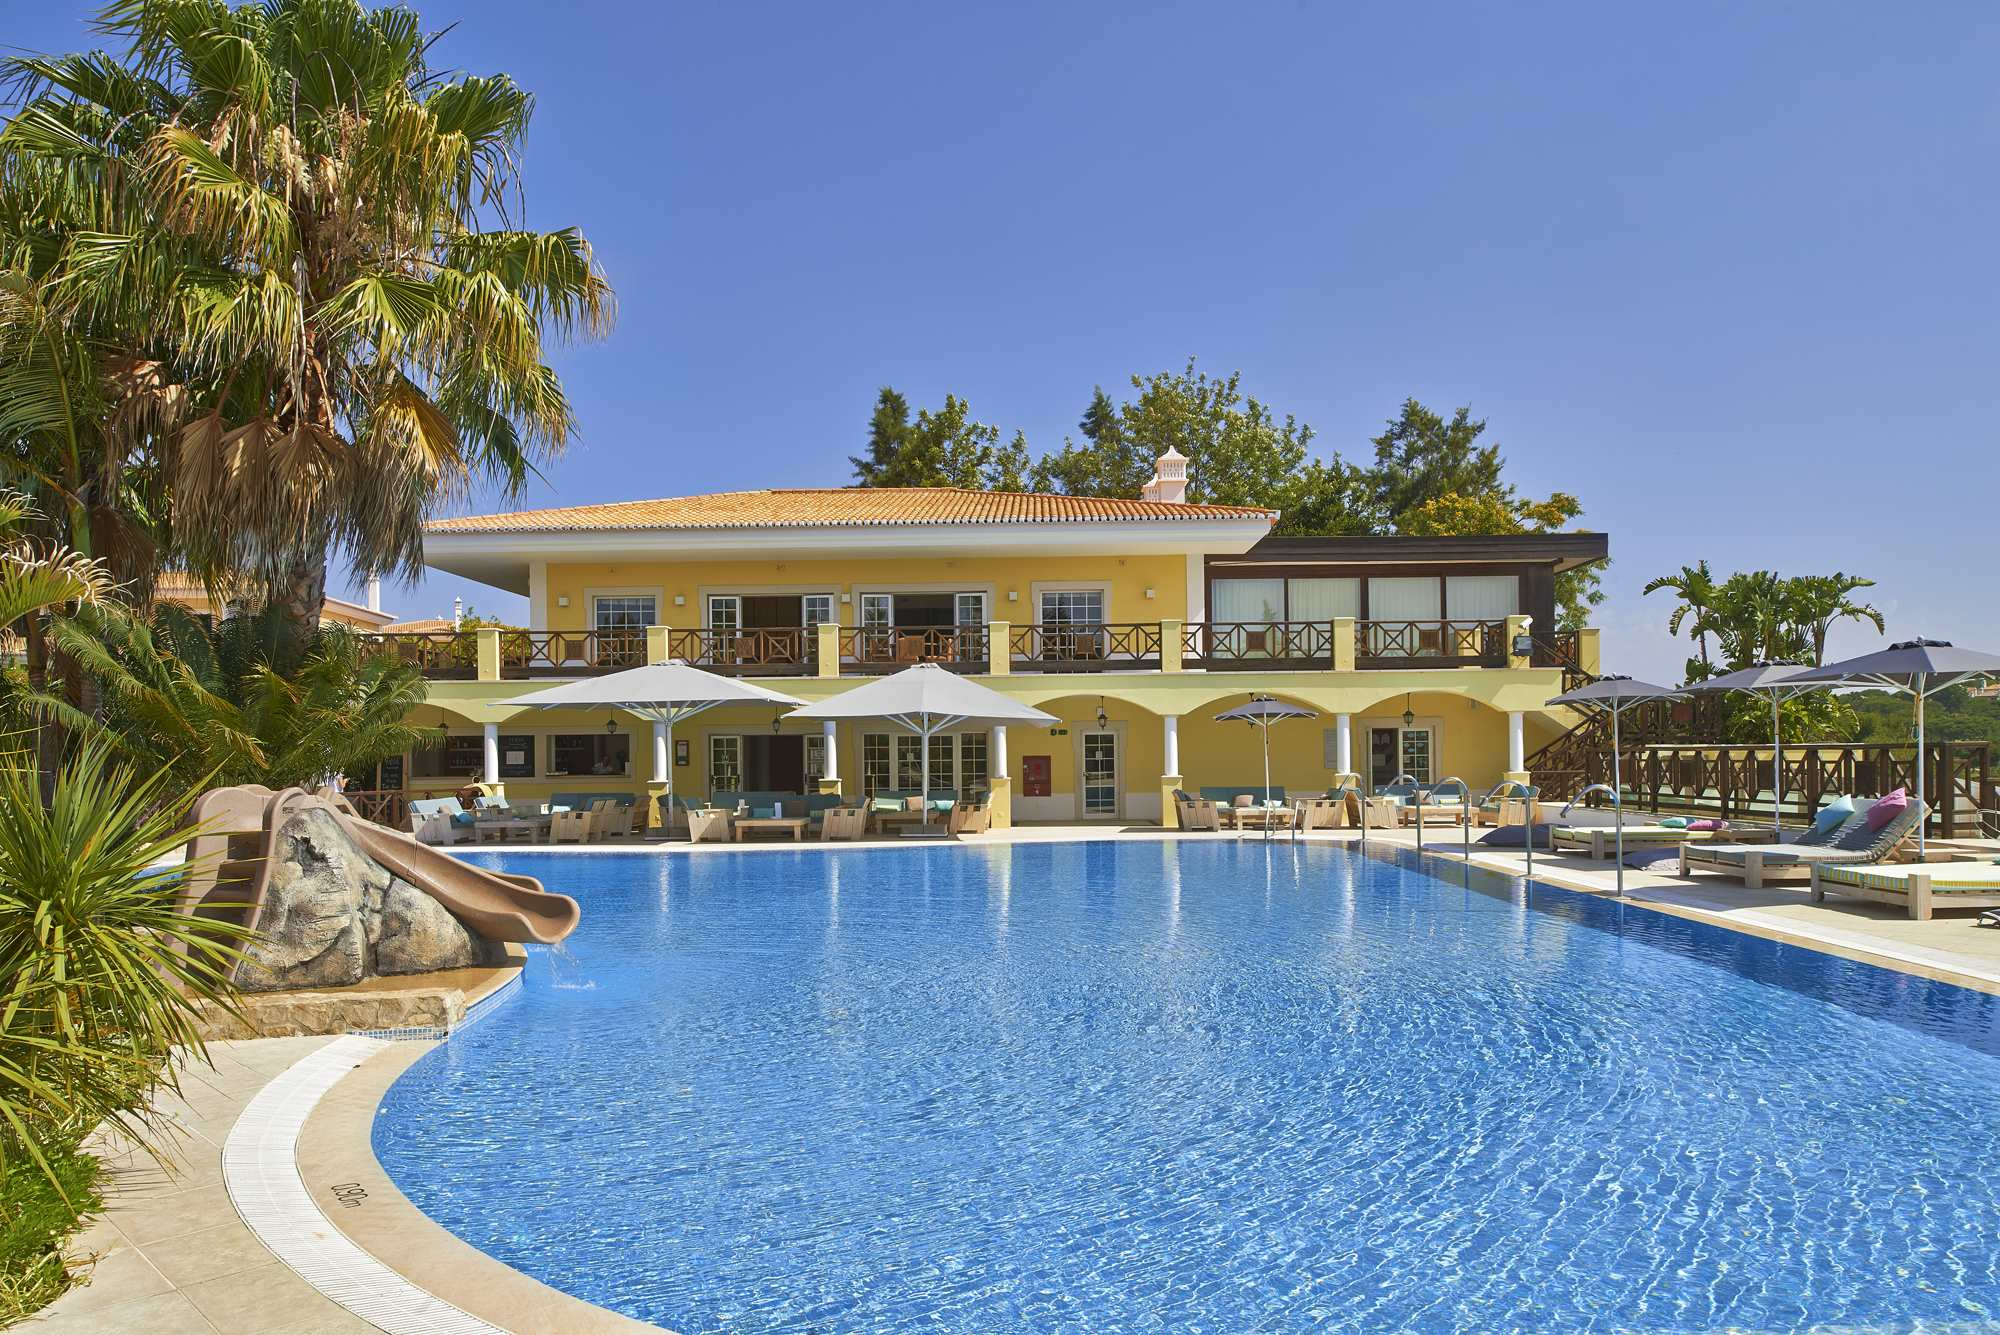 Martinhal Quinta Townhouse (3 Bedroom), 3 bedroom villa in Martinhal Quinta Resort, Algarve Photo #24